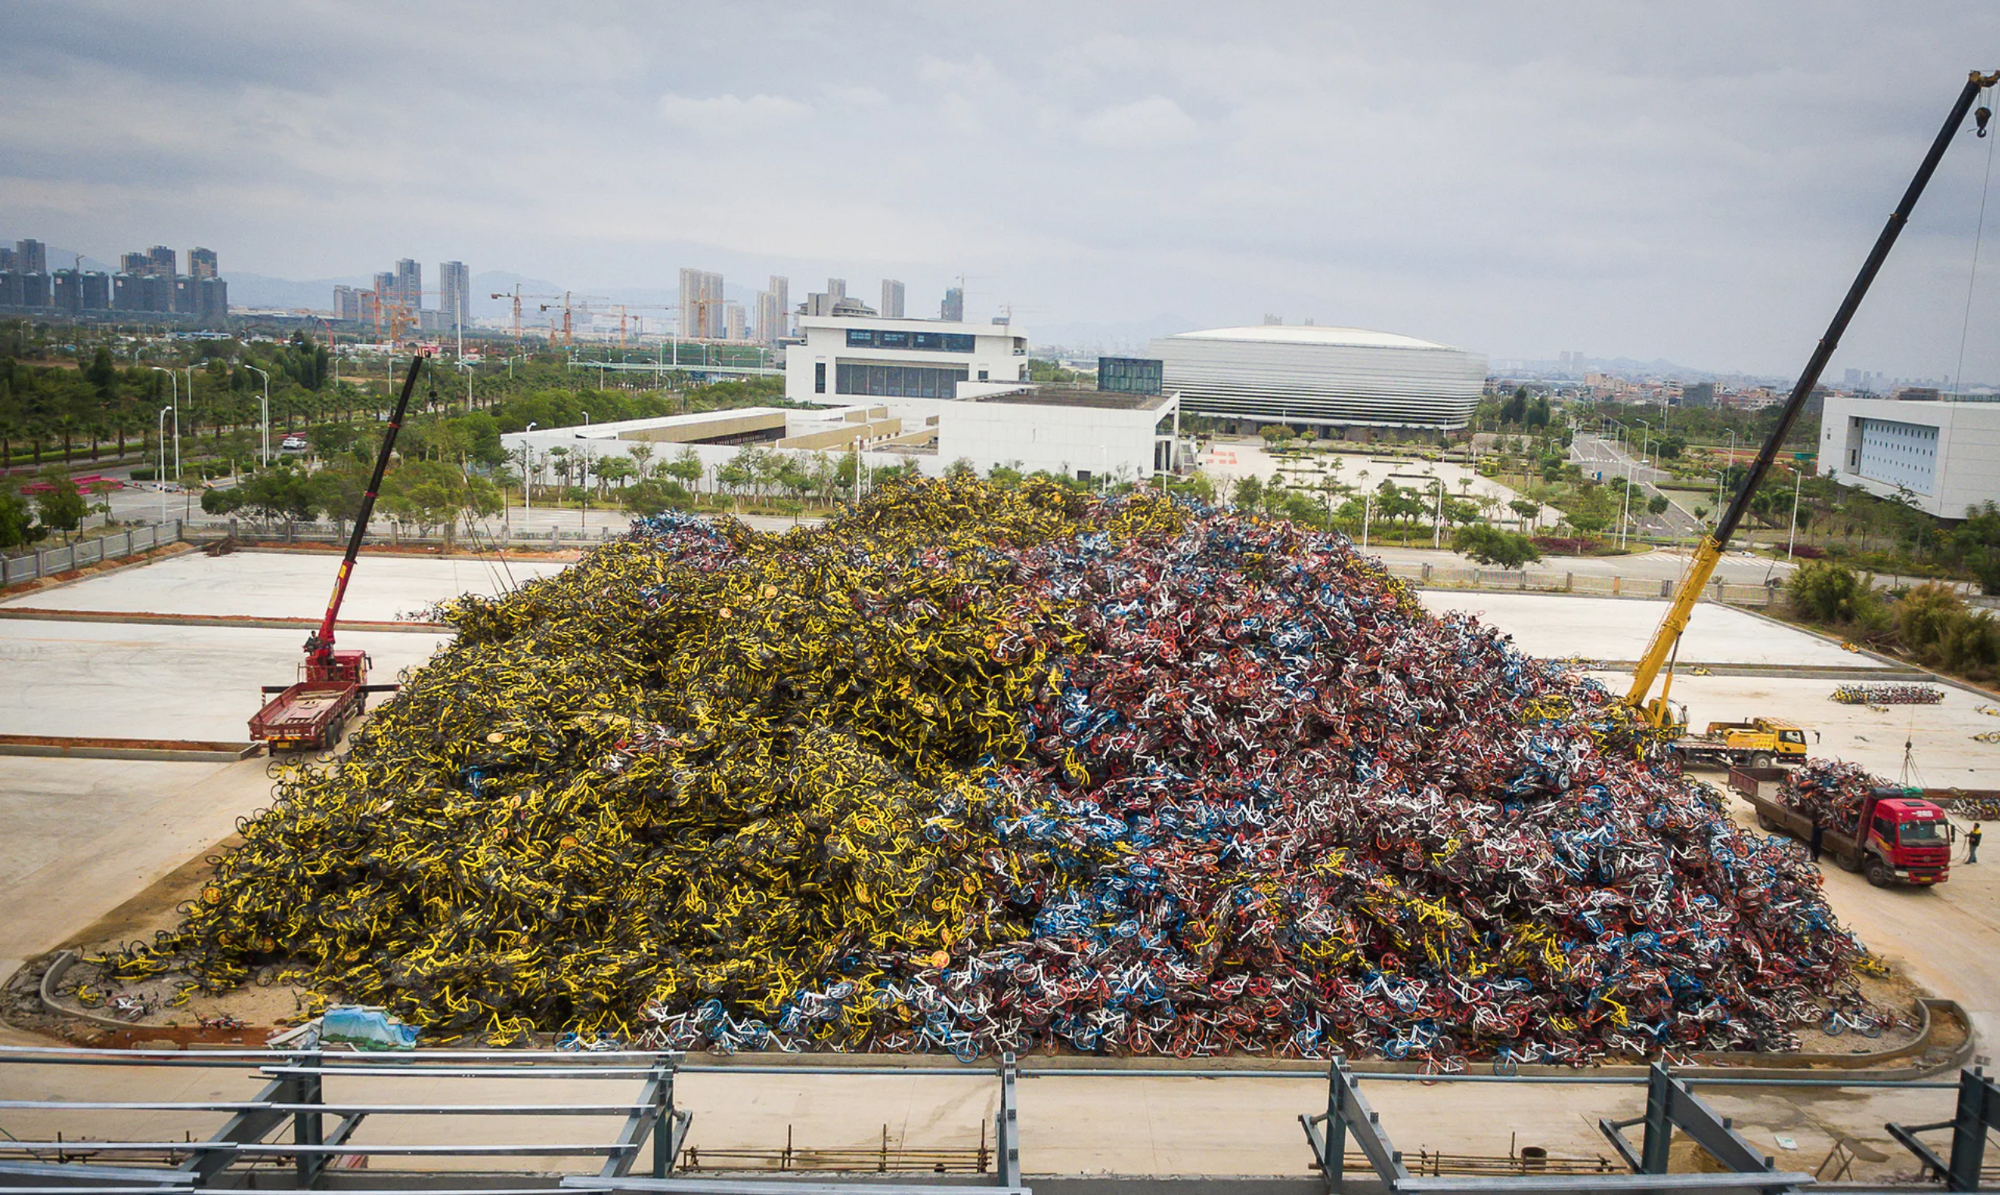 A chines bike grave yard. Photo: The Guardian ( https://www.theguardian.com/uk-news/2017/nov/25/chinas-bike-share-graveyard-a-monument-to-industrys-arrogance )